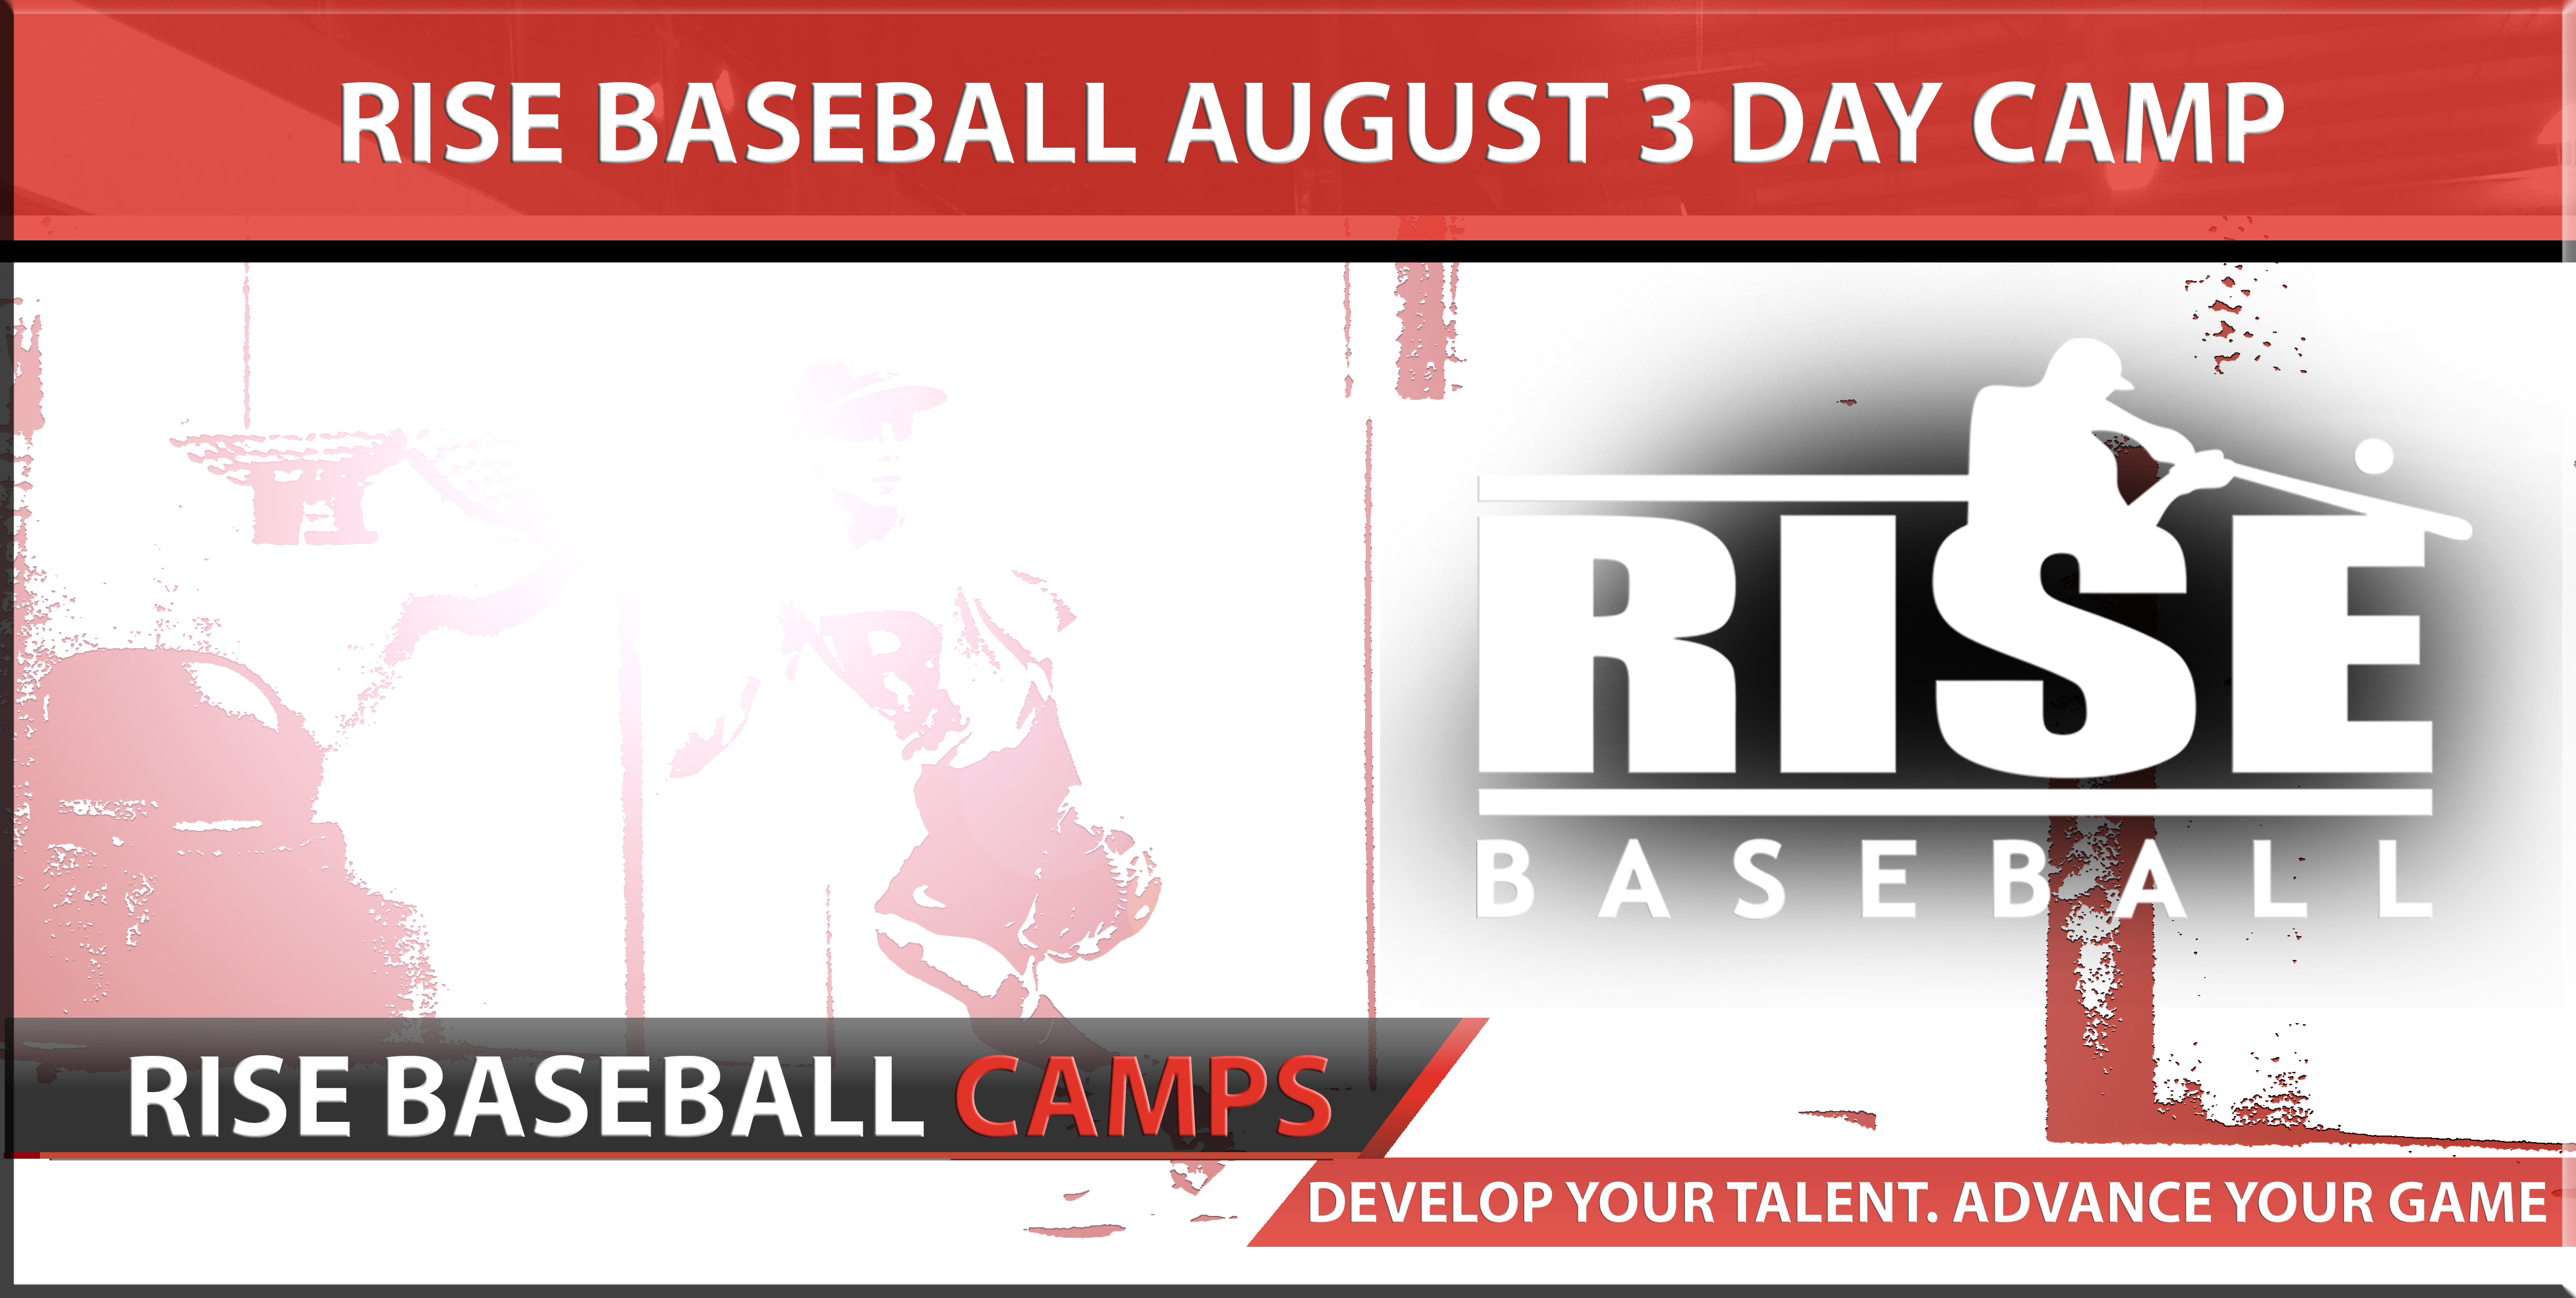 RISE Baseball August 3 Day Camp copy